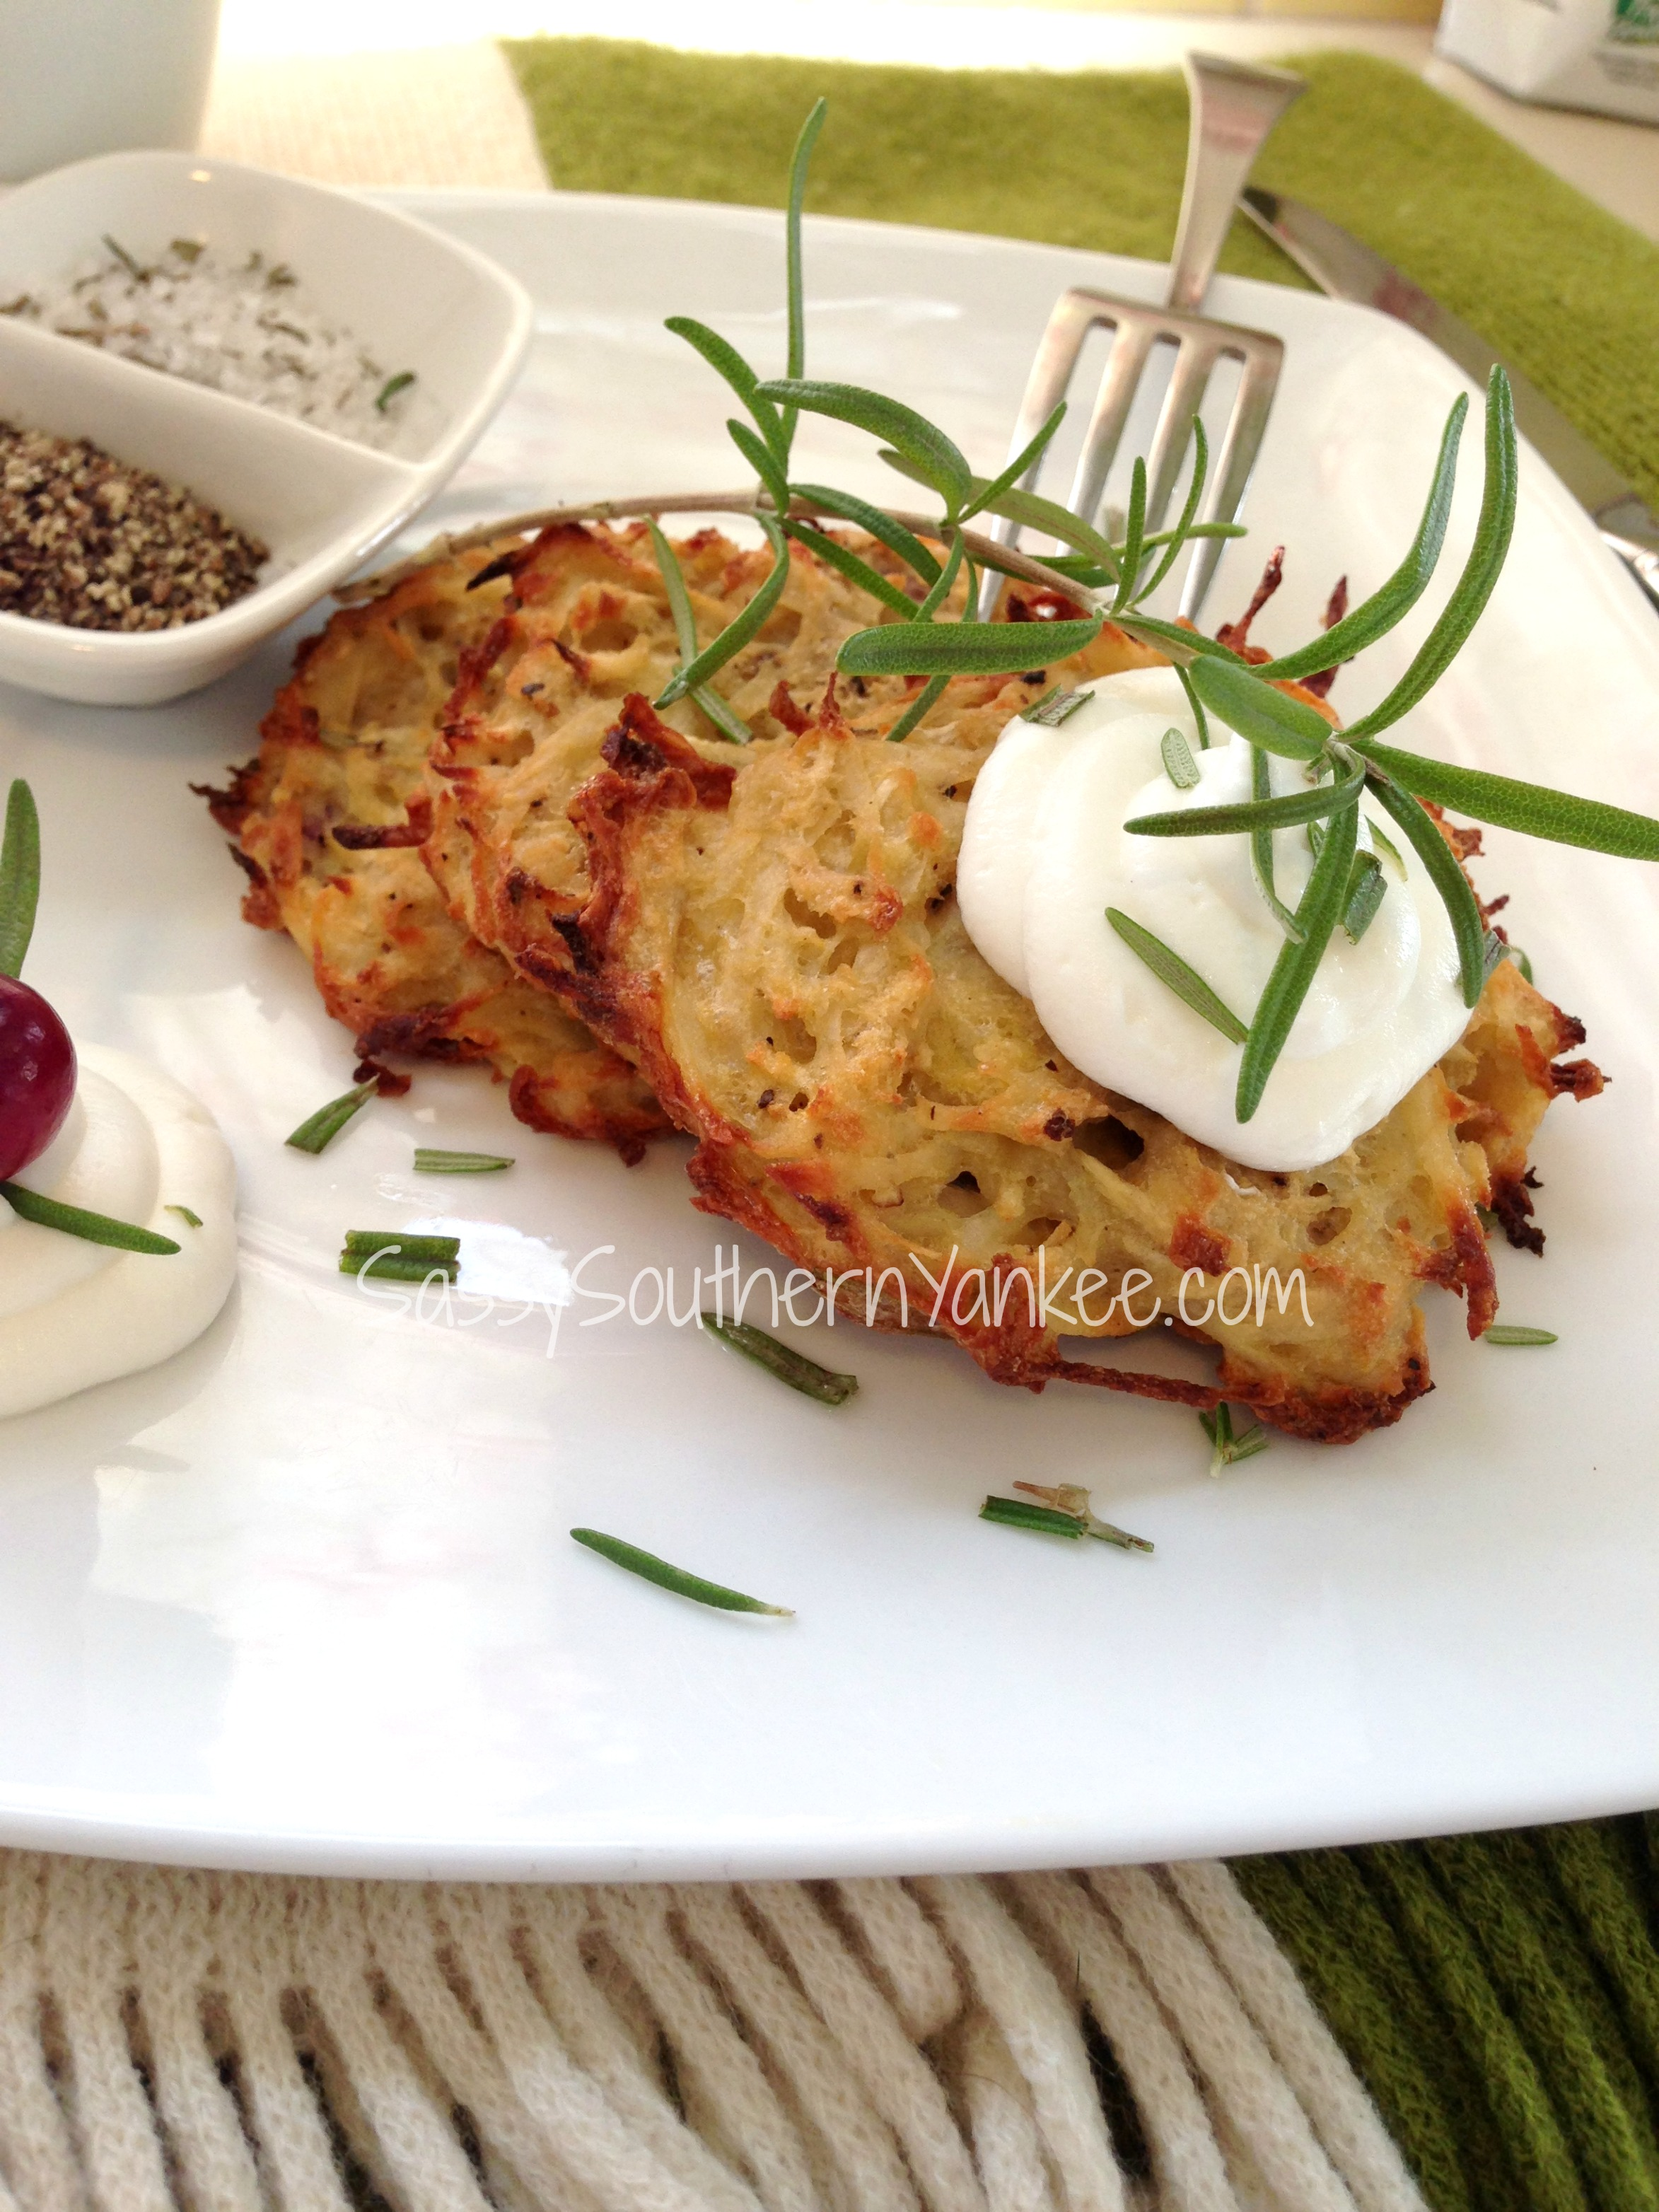 Healthier Baked Potato and Parsnip Latkes